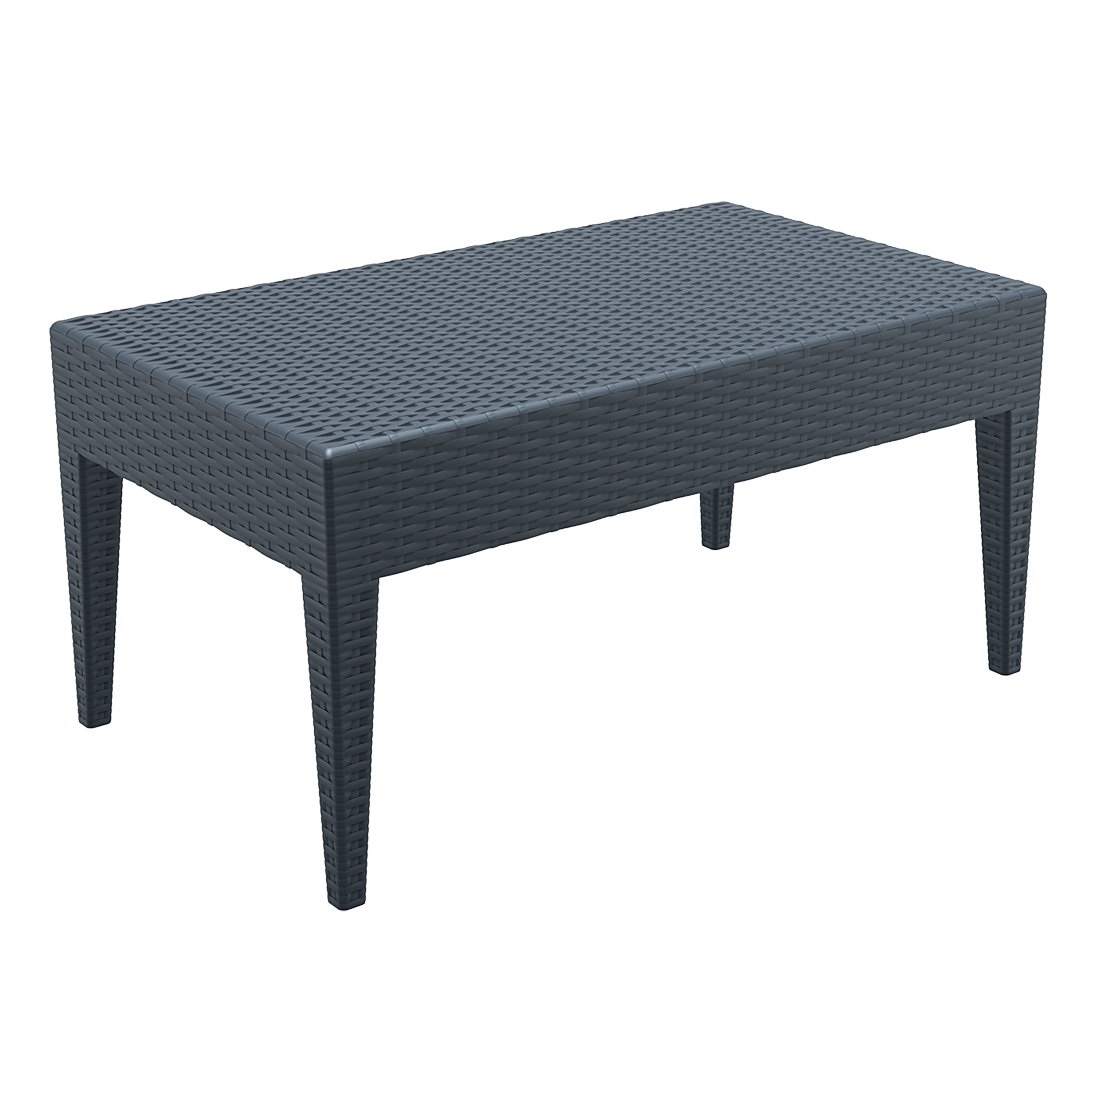 Tequila Lounge Coffee Table Anthracite